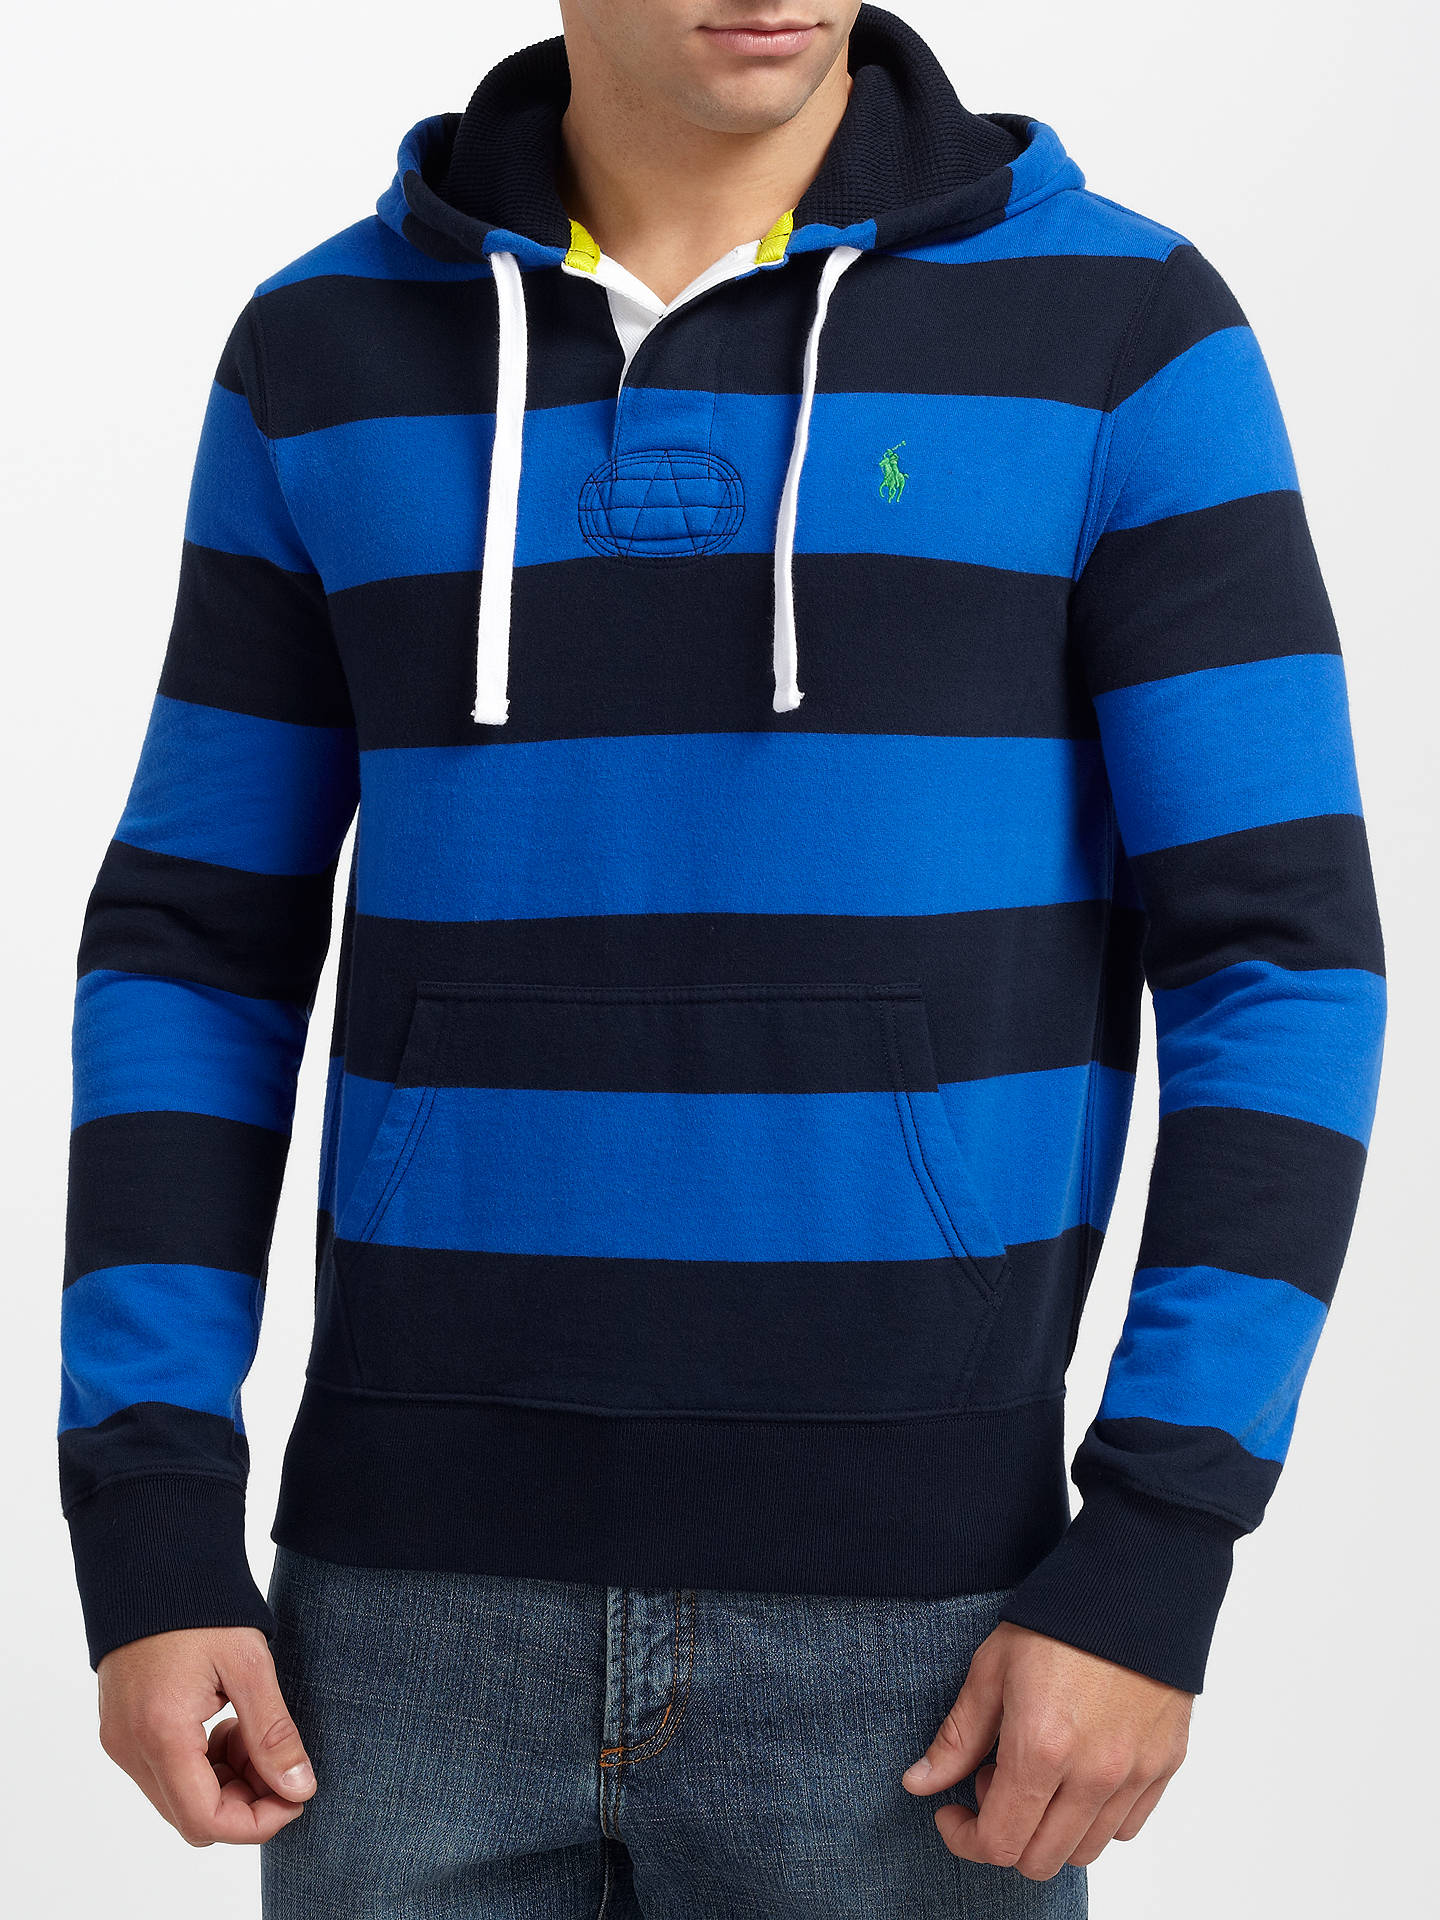 cef7d5edef6 ... Buy Polo Ralph Lauren Hooded Rugby Sweat Top, Pacific Royal, L Online  at johnlewis ...